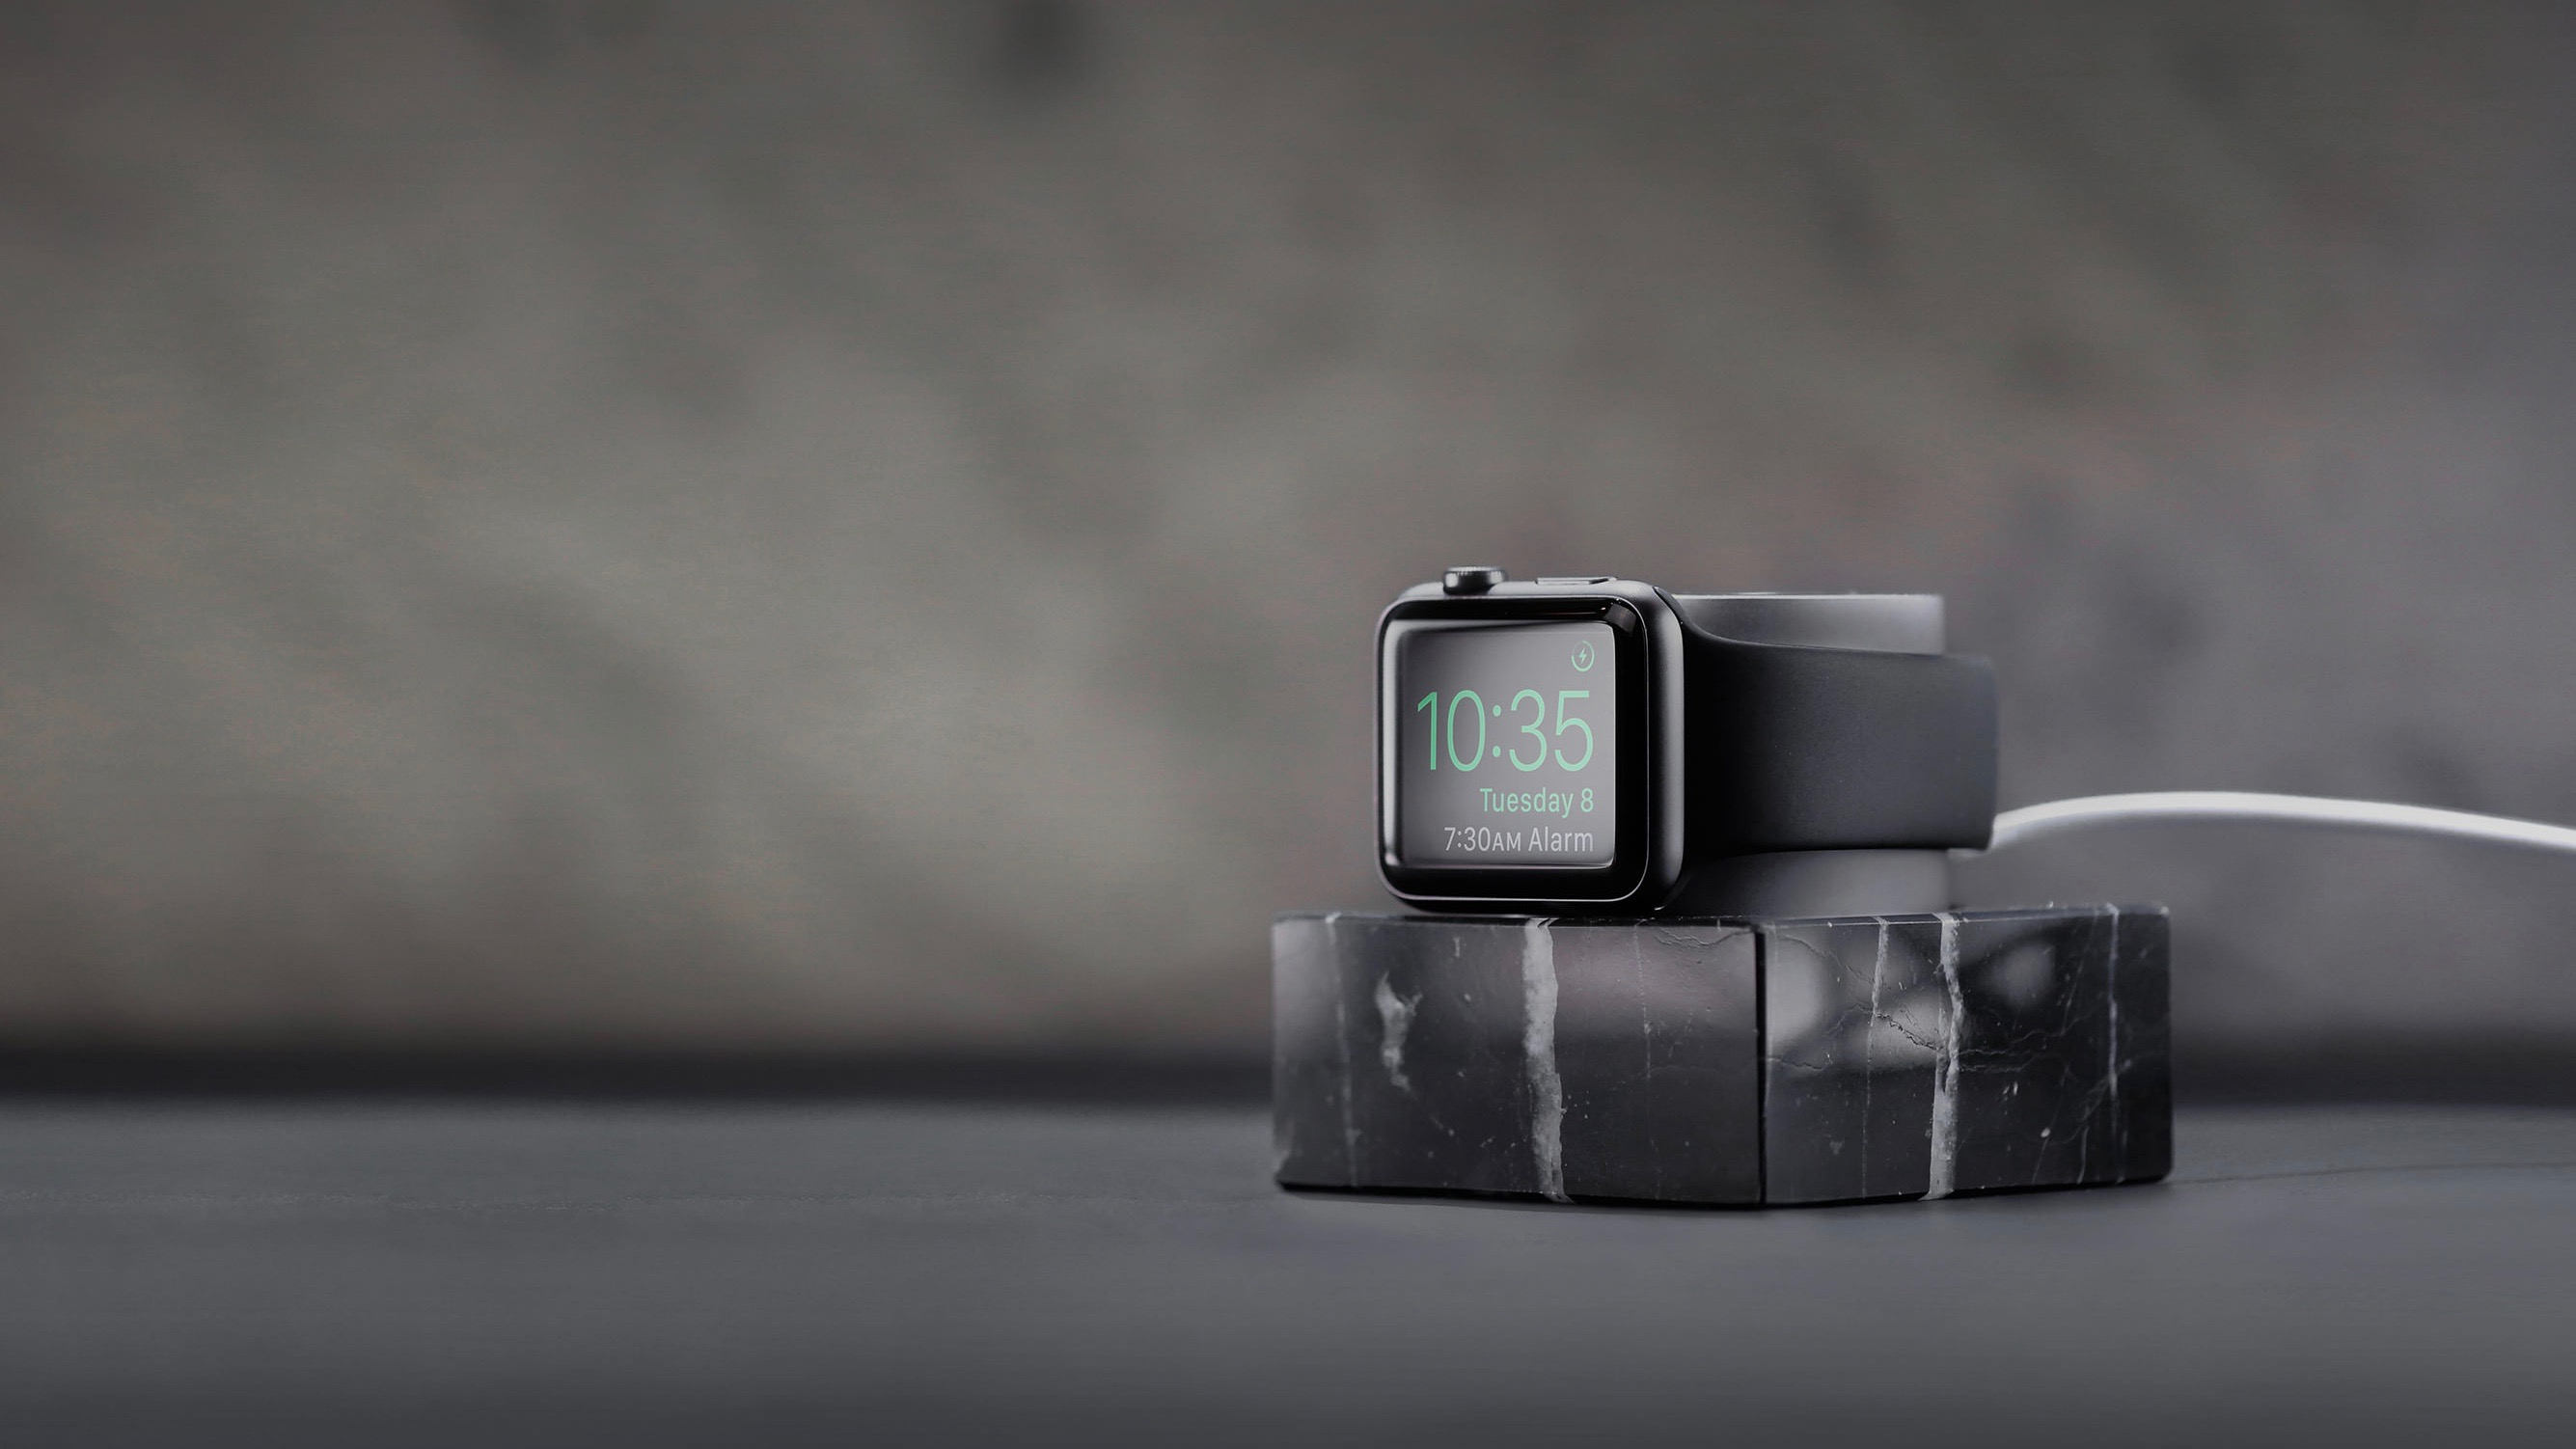 654360cc3bf7aa 15 great Apple Watch accessories to pair with your smartwatch | TechRadar